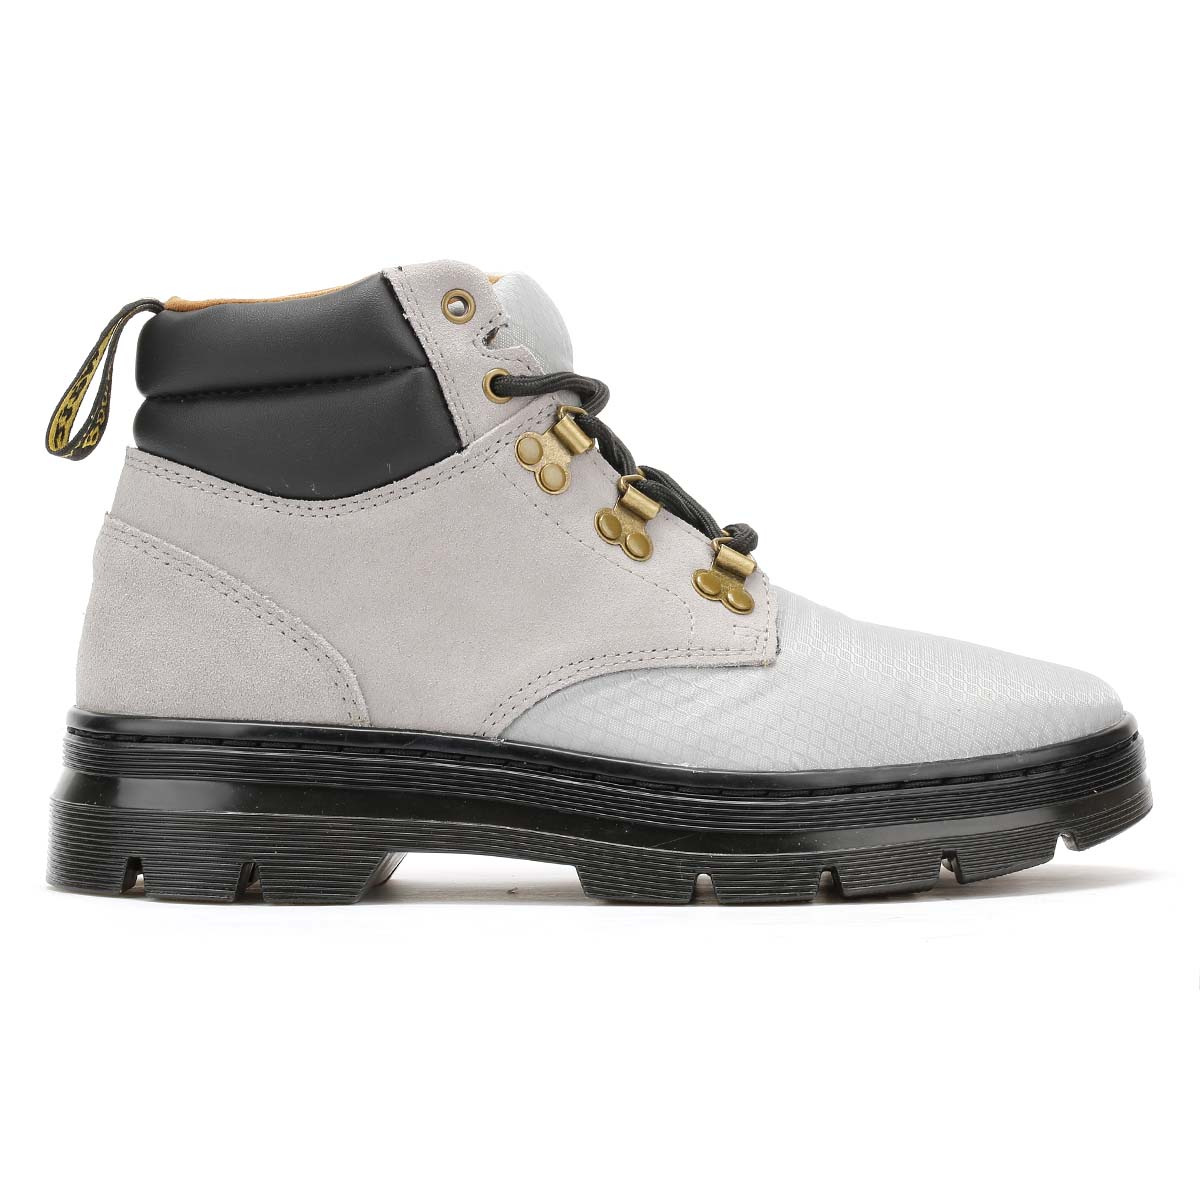 Dr. Martens Grey Hiker Boots, Rakim Ripstop, Ankle Shoes